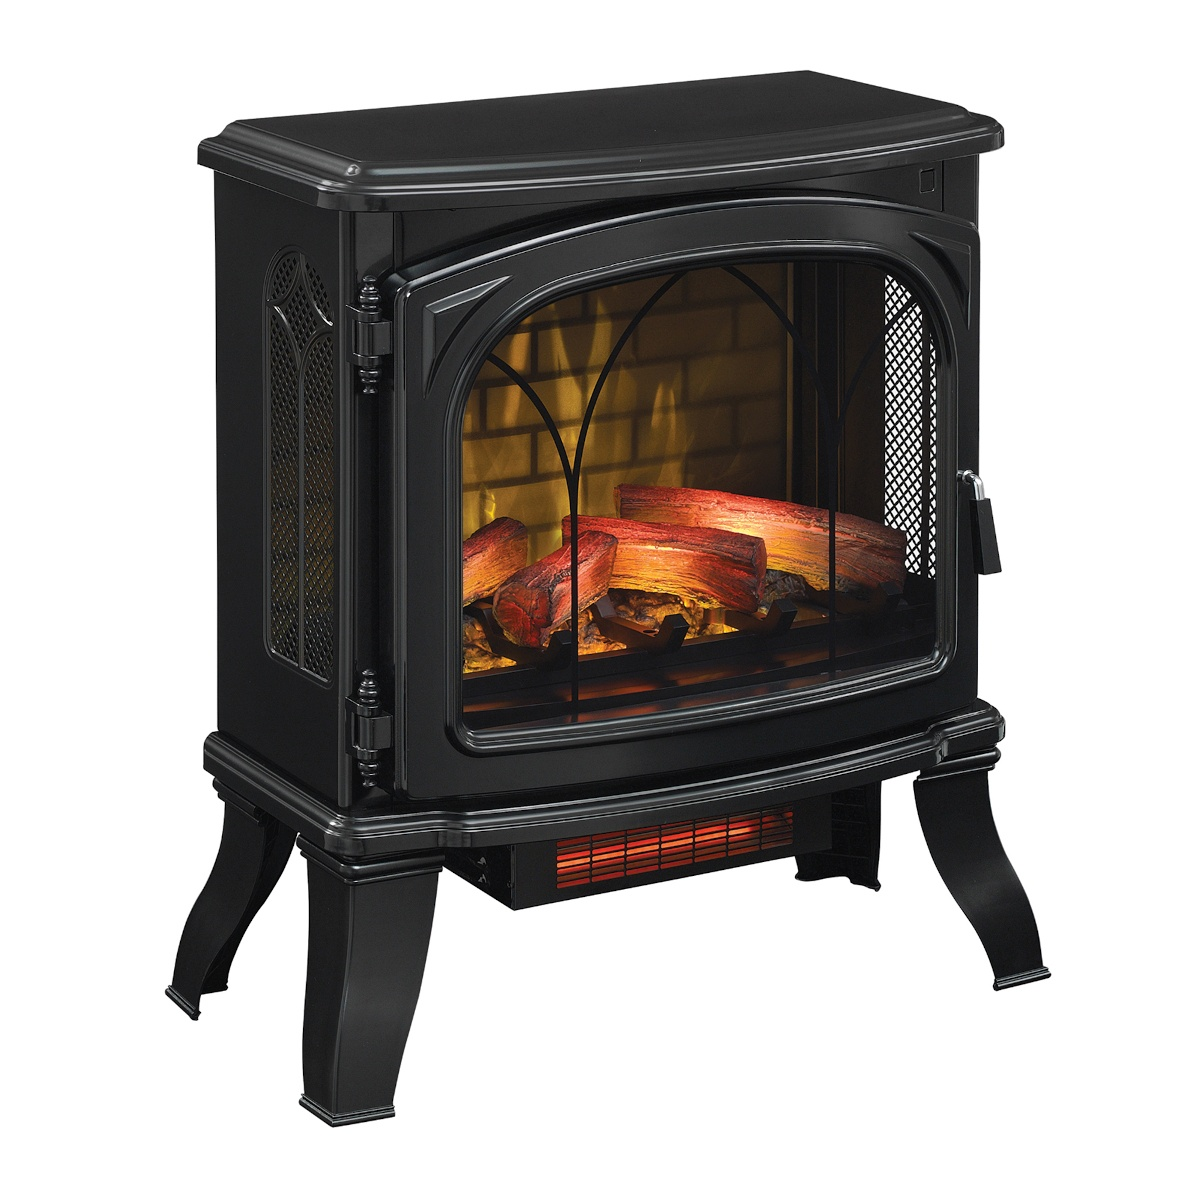 Duraflame Black Electric Stove Infrared Heater